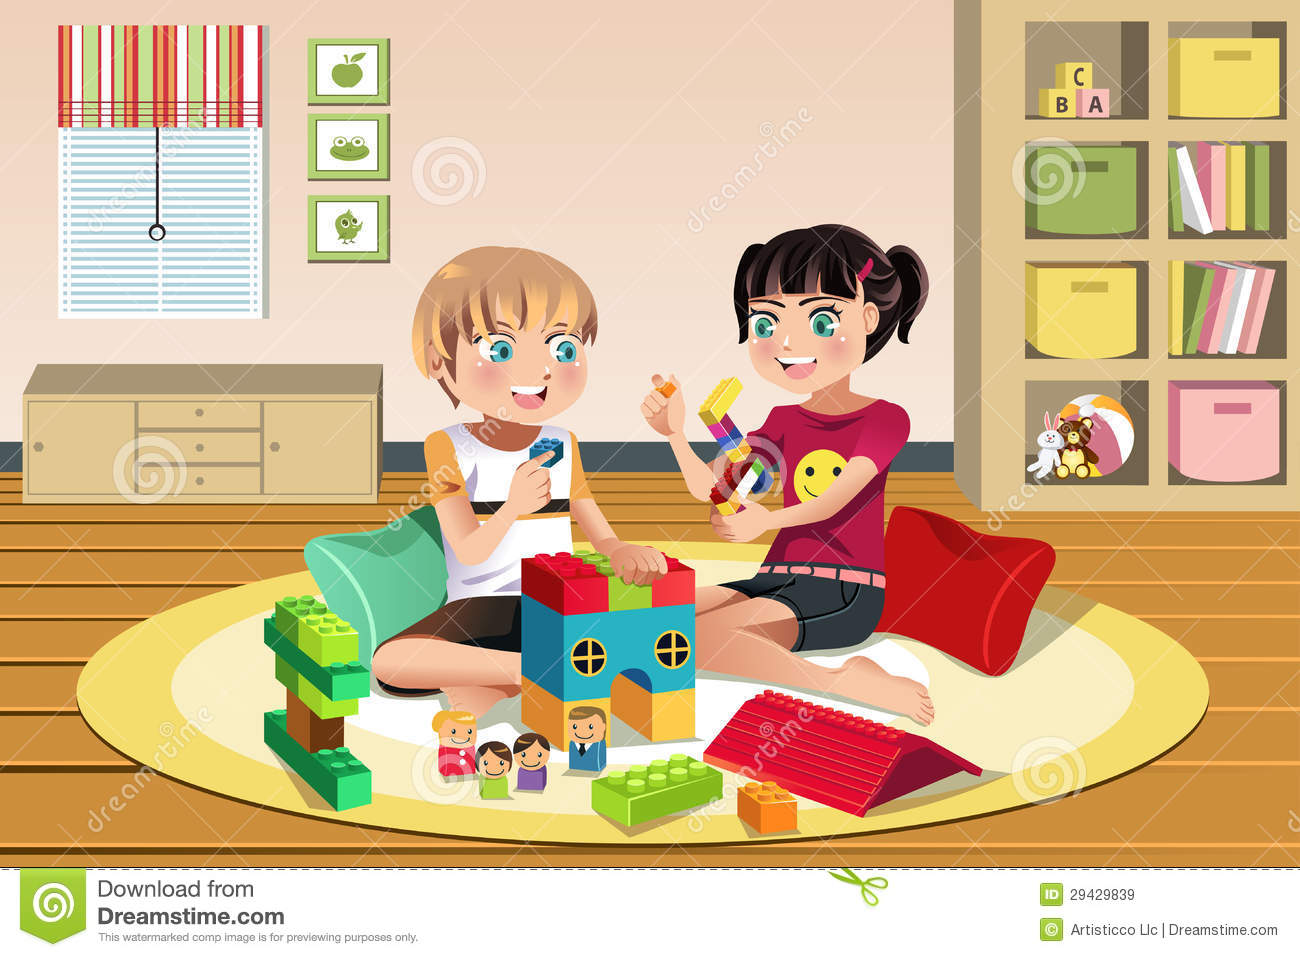 Toys And Games Clip Art : Kids playing toys stock vector illustration of friendship